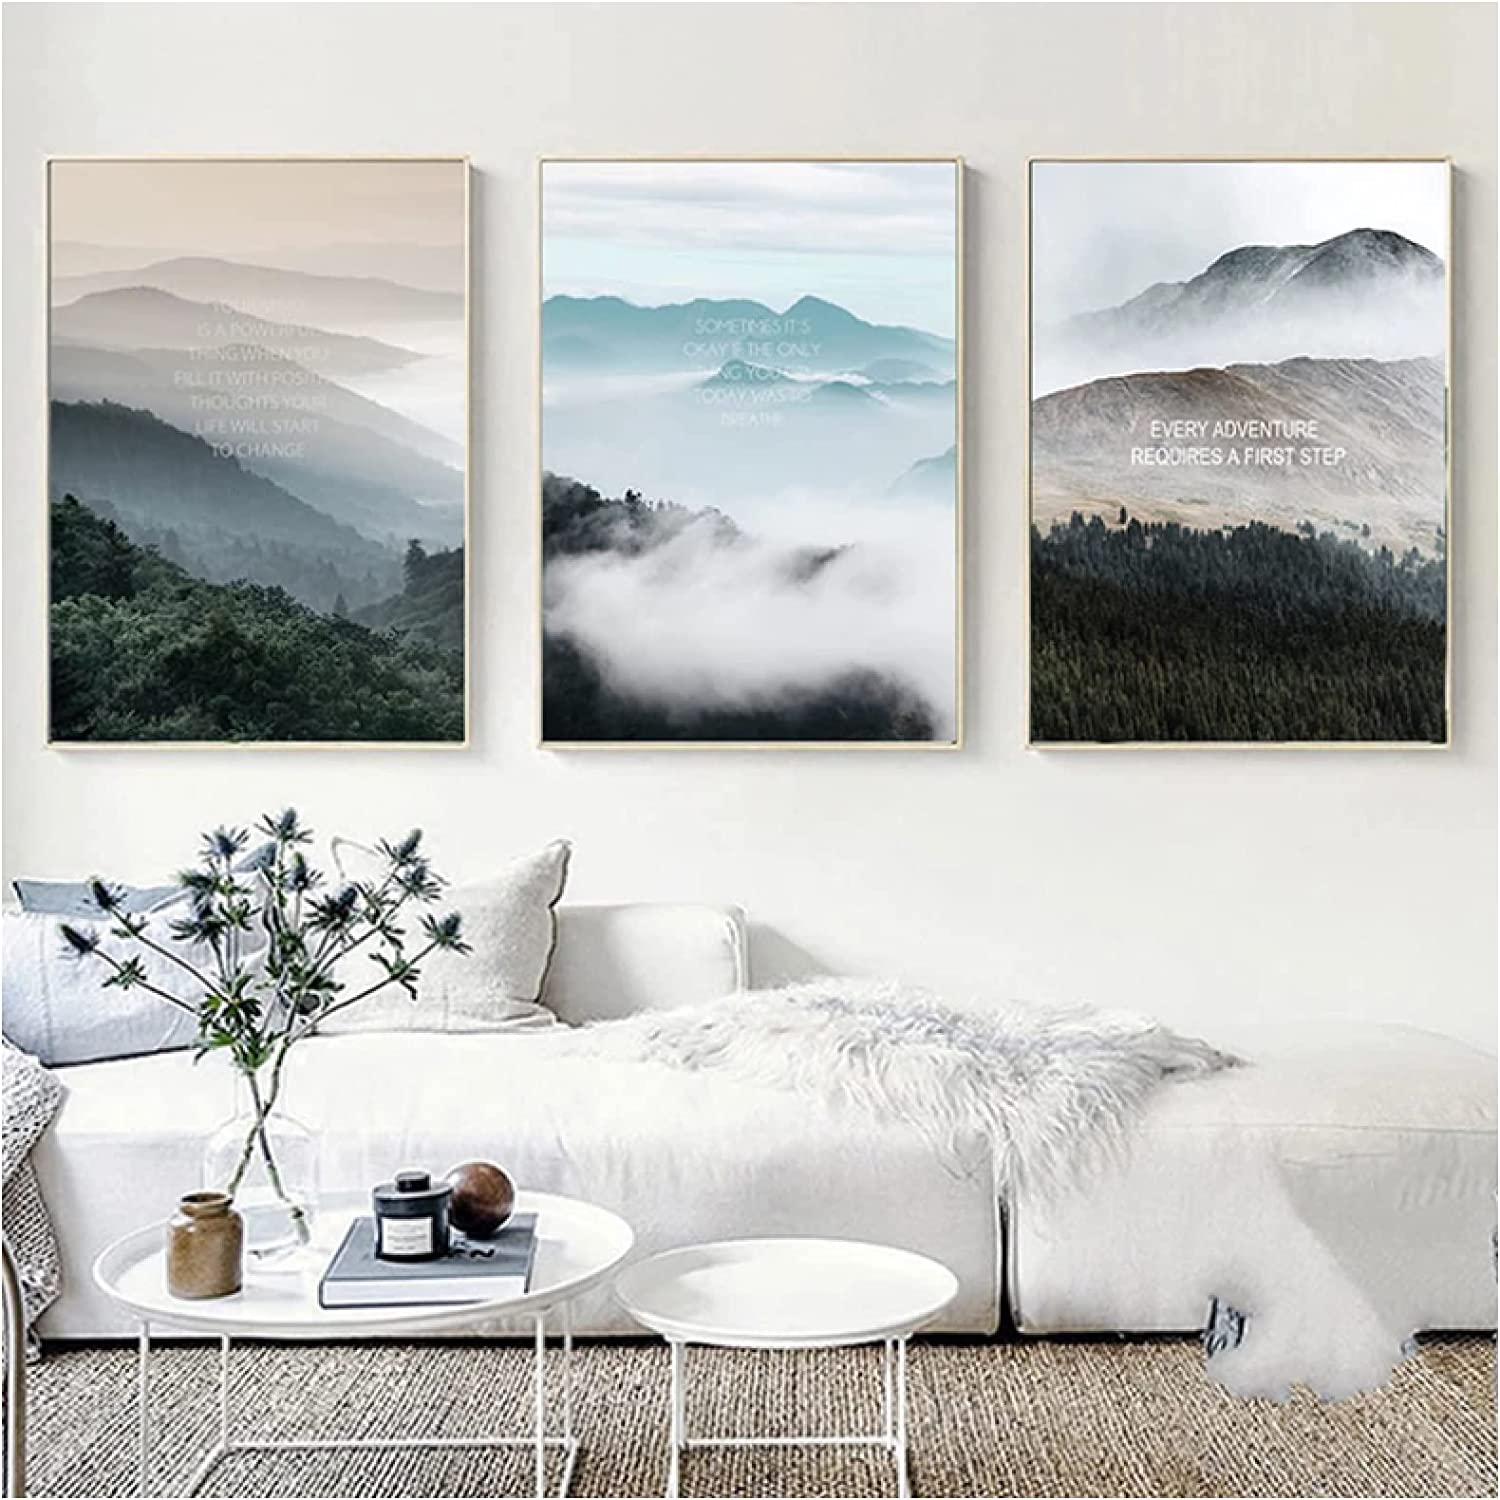 EZRYBHD Wall Art Our shop OFFers the best service Landscape Canvas Nordic Poster S Print Max 73% OFF